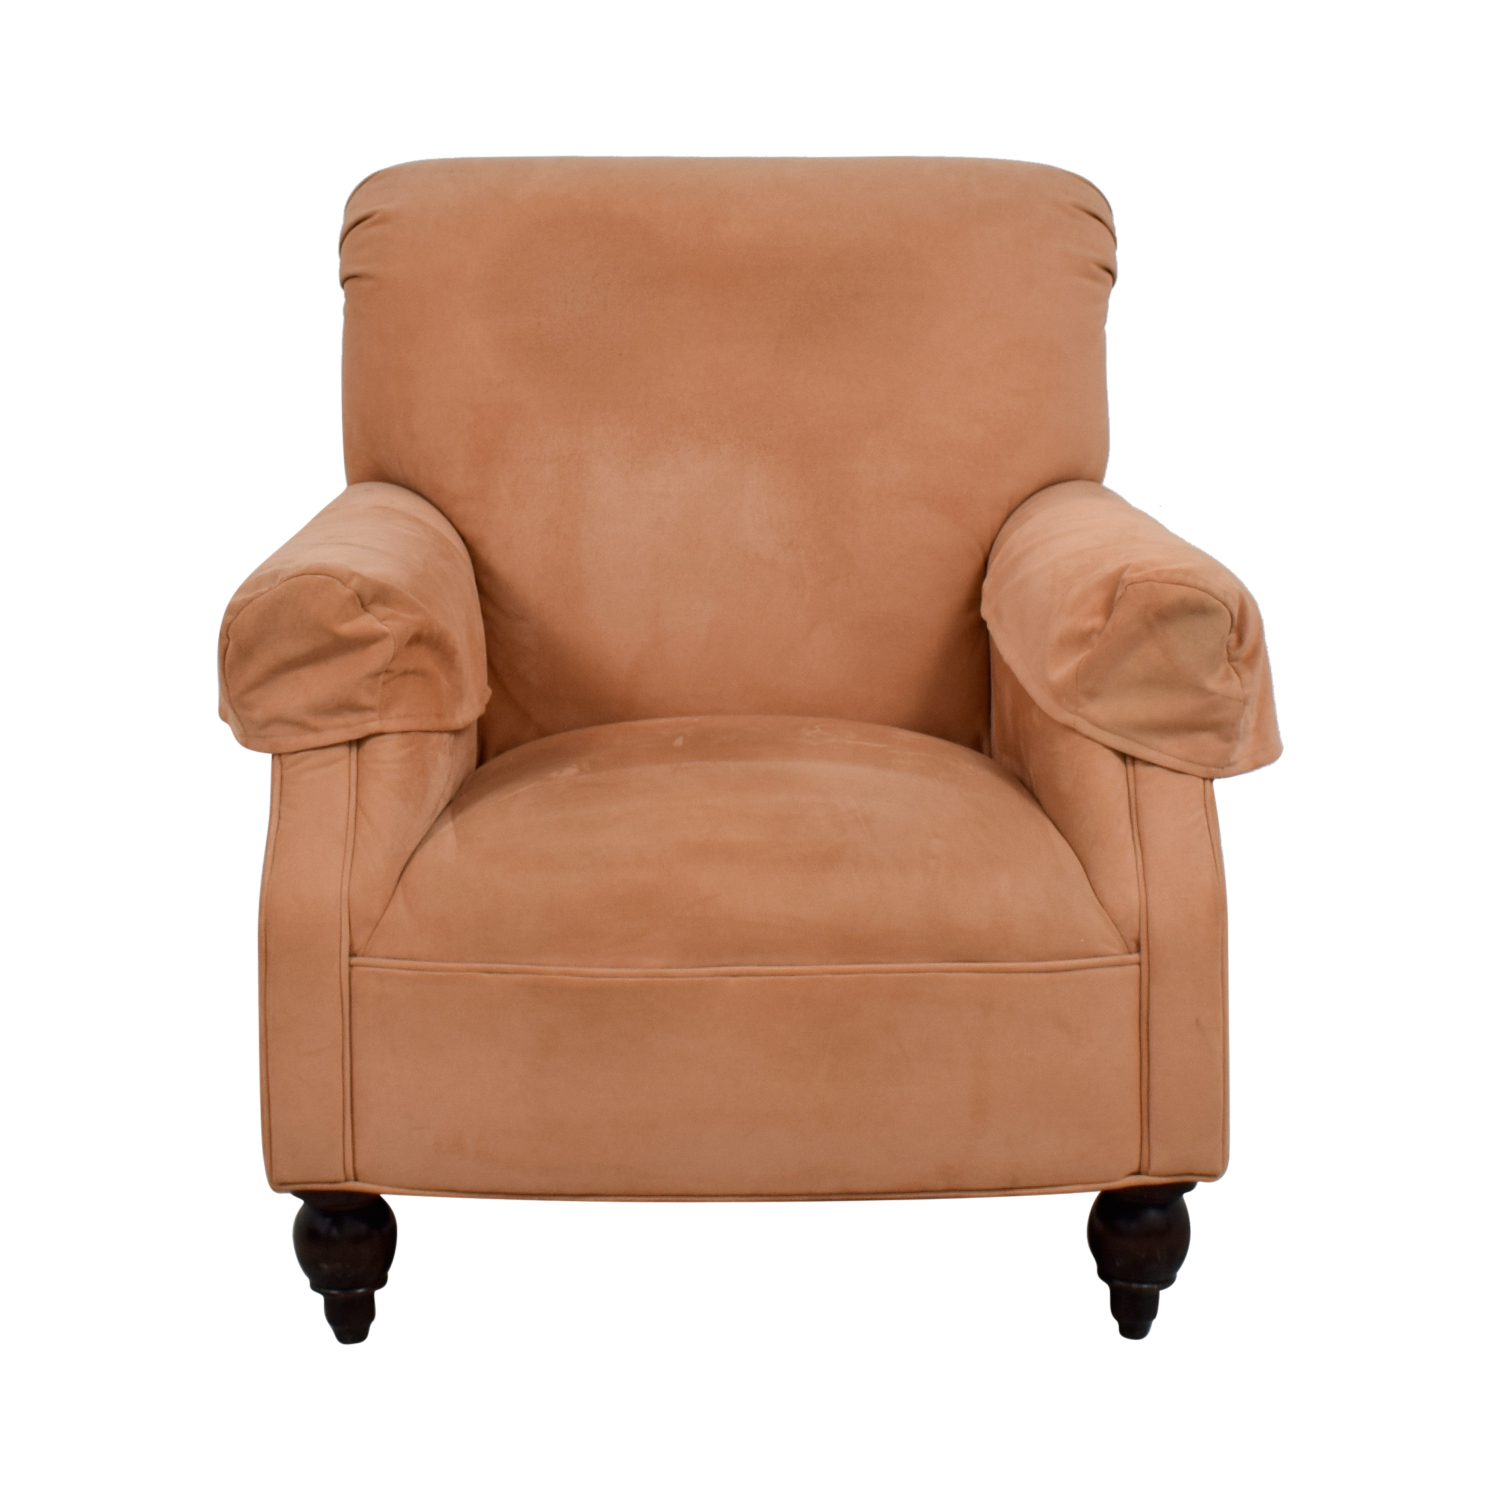 90% Off - Expressions Devon Microfiber Salmon Accent Chair / Chairs inside Devon Ii Swivel Accent Chairs